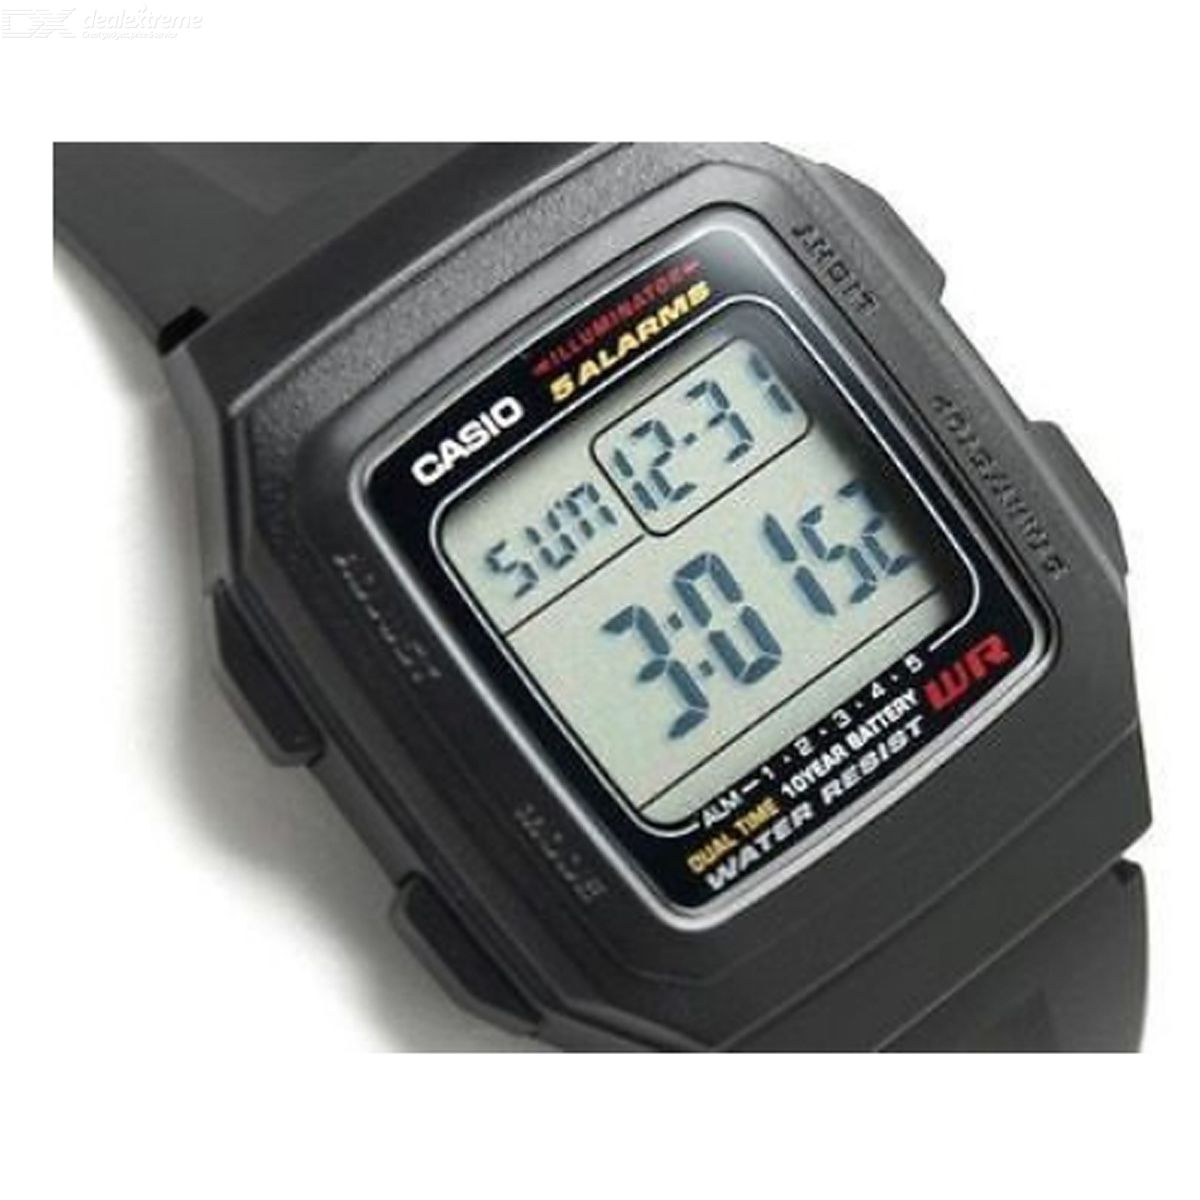 Casio F-201WA-1ADF Men's Digital Sport Watch-Black/Silver(Without Box)